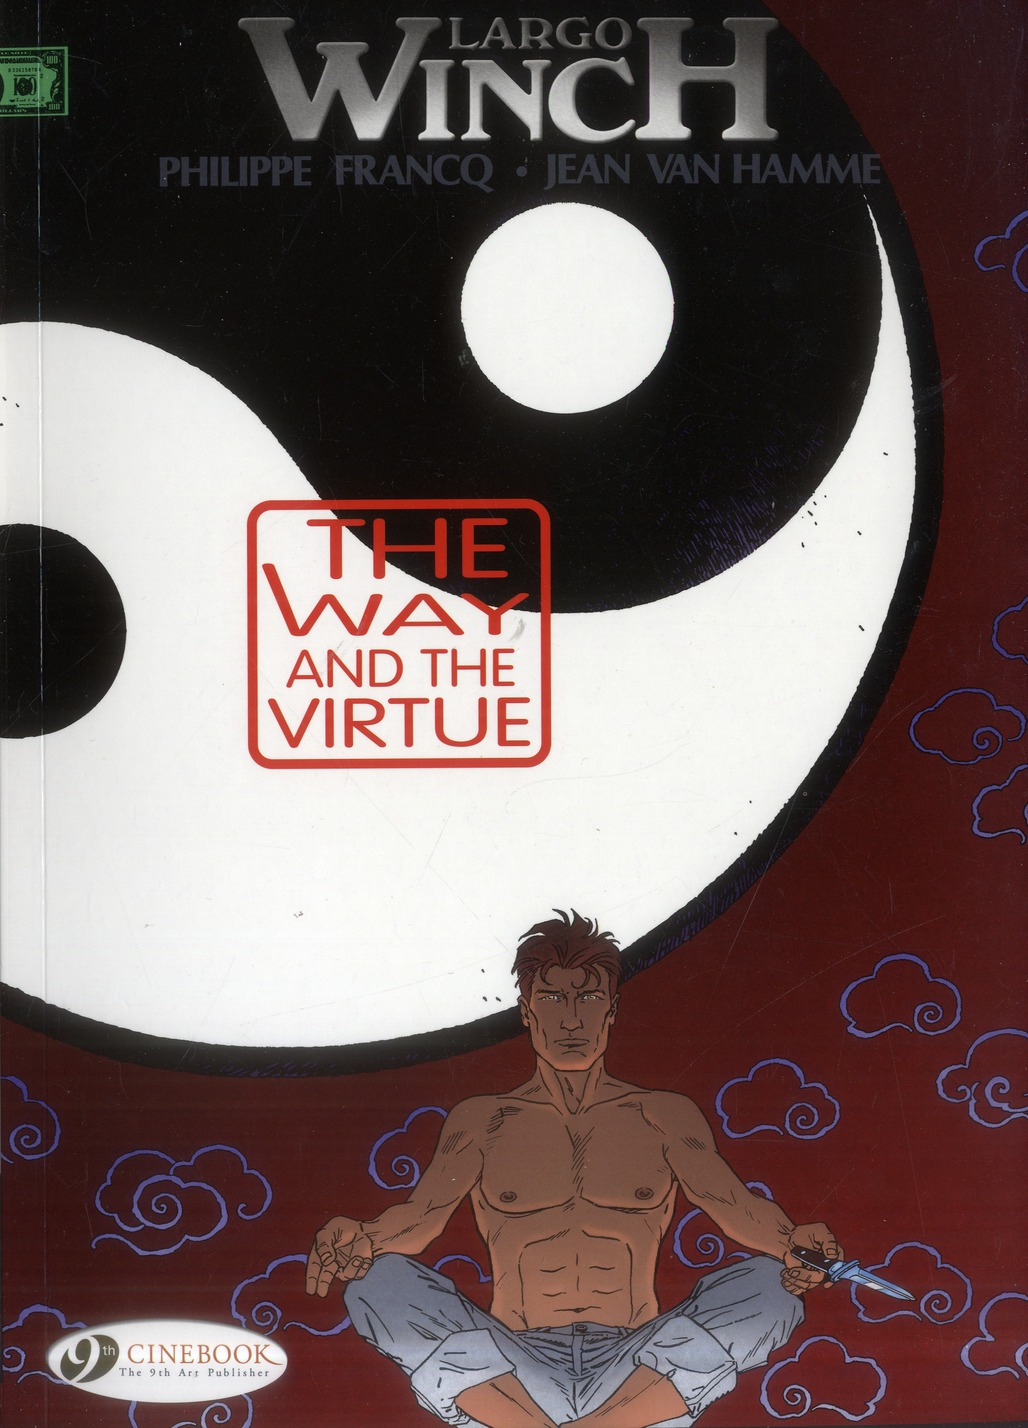 LARGO WINCH - TOME 12 THE WAY AND THE VIRTUE